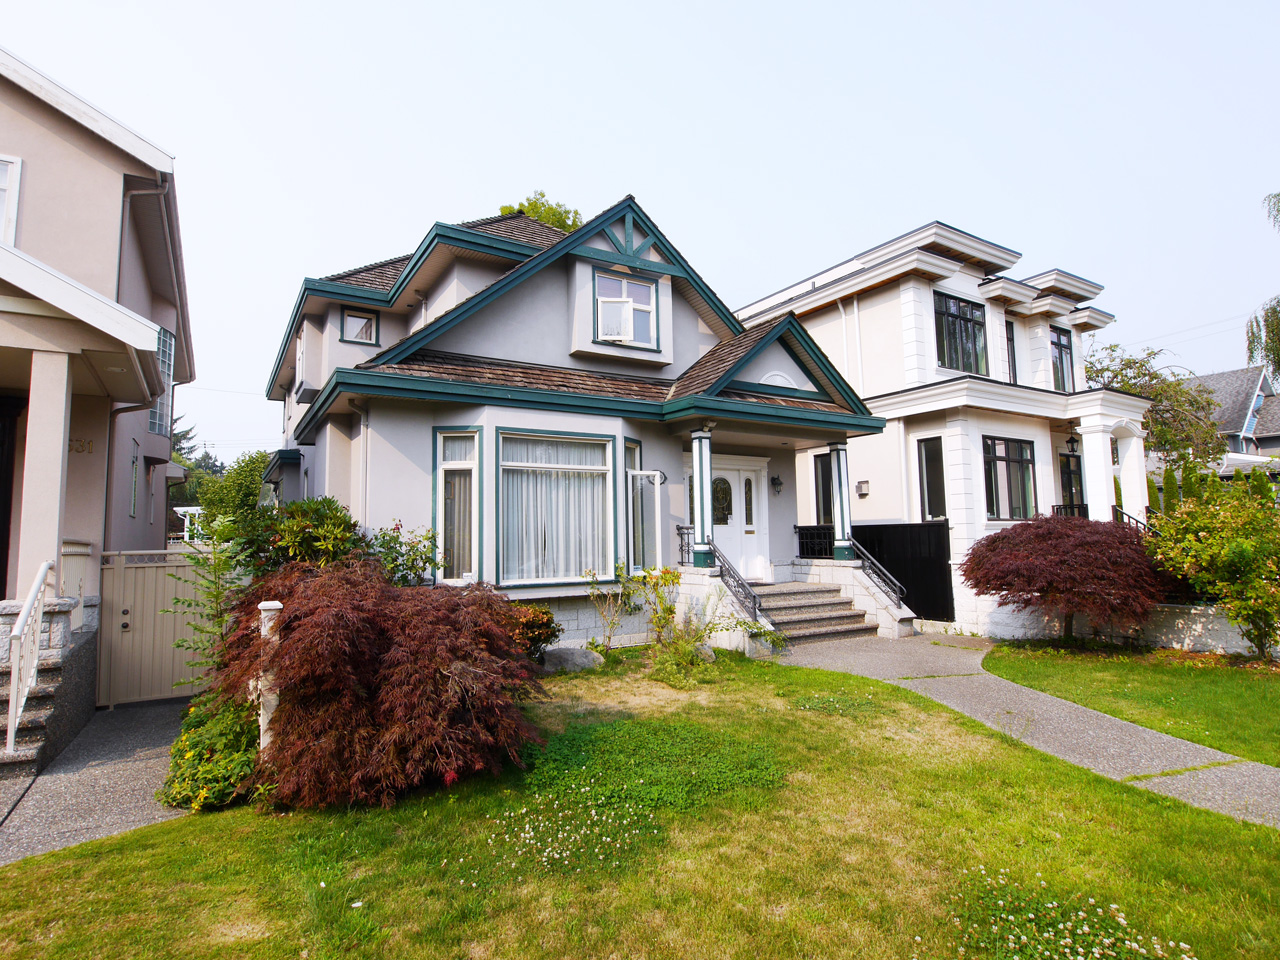 2519 W. 45th Ave, Vancouver